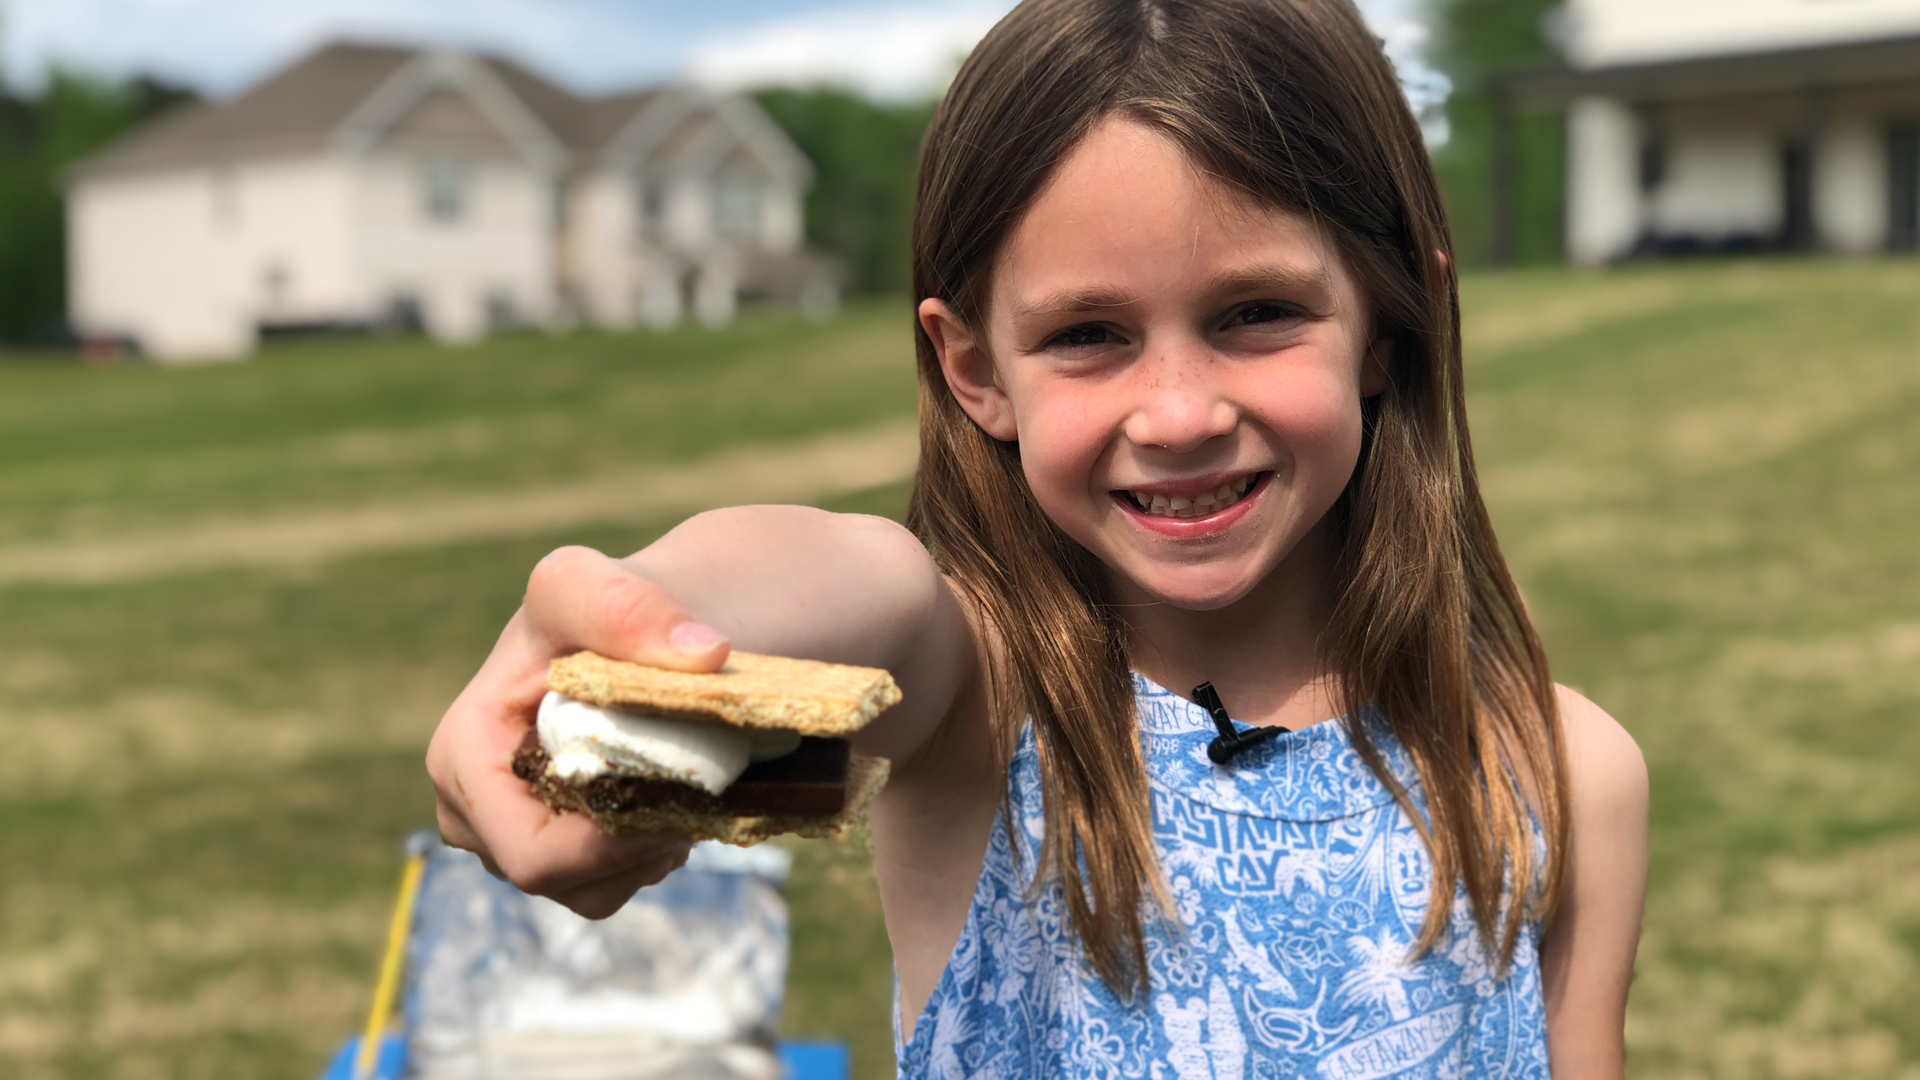 How to Make S'mores in a Solar Oven